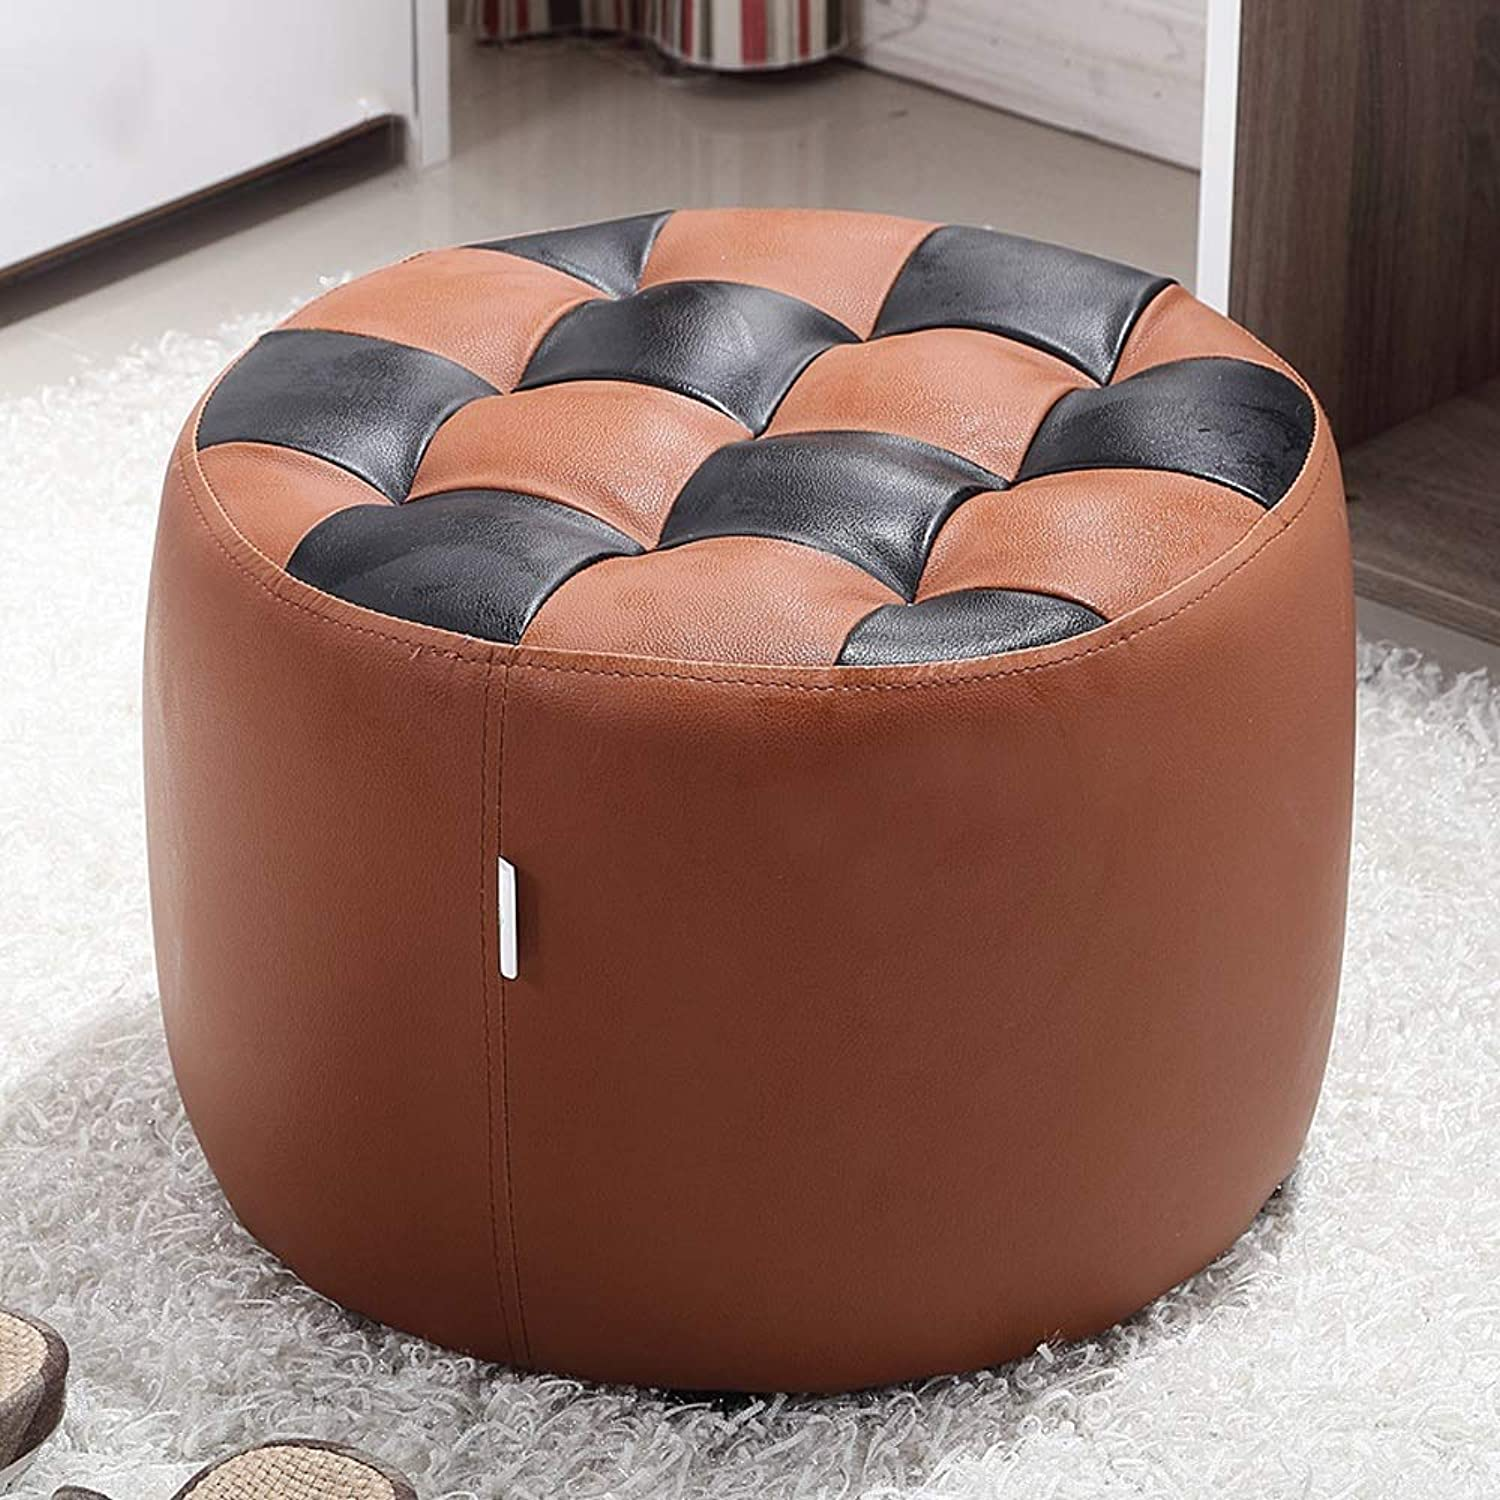 LLYU Solid Wood shoes Bench Sofa Stool Dressing Stool shoes Bench Simple Modern Small Round Stool Bedroom Living Room (color   E)